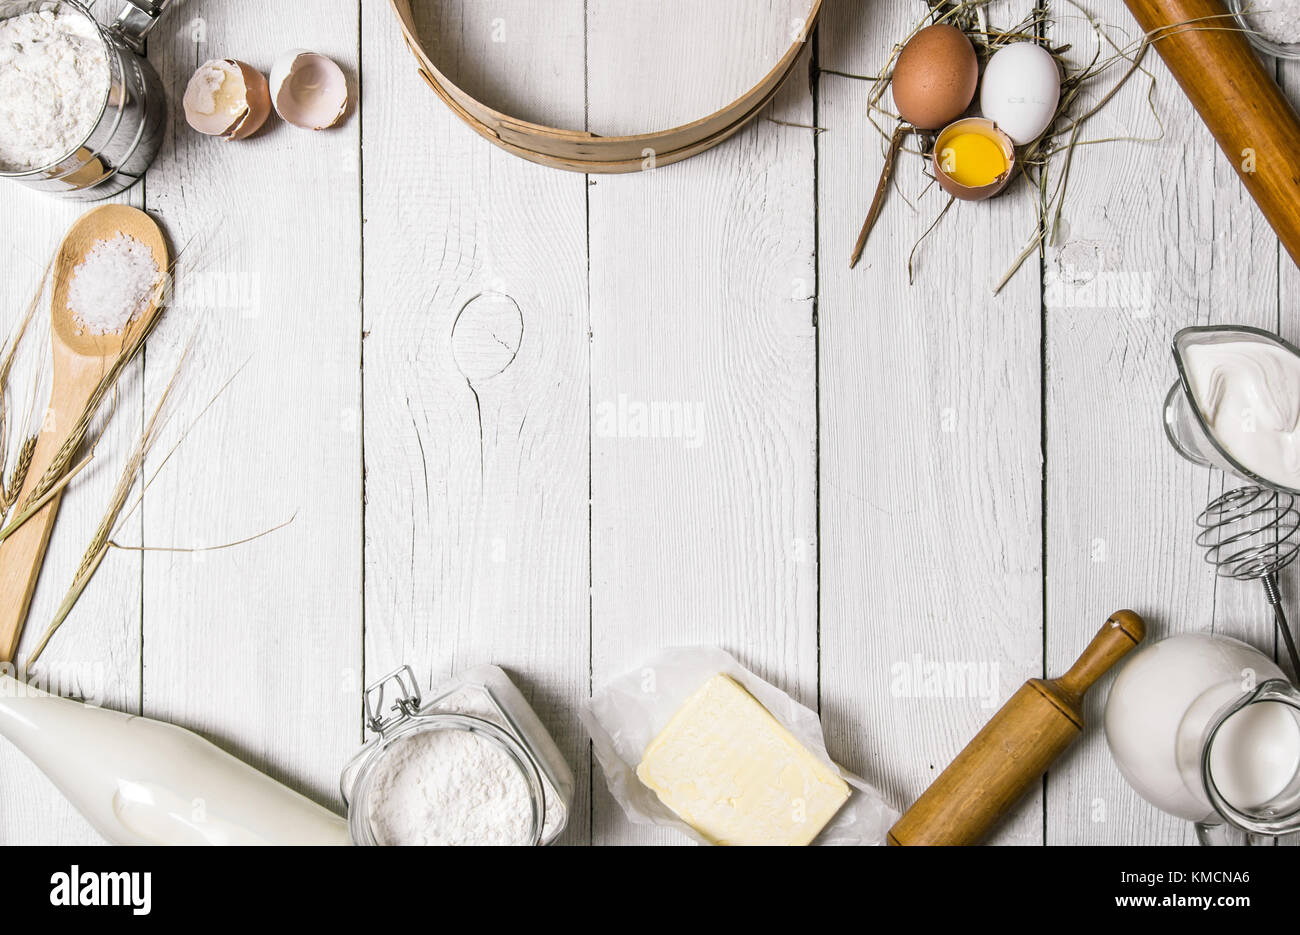 baking background. ingredients for the dough - milk, eggs, flour